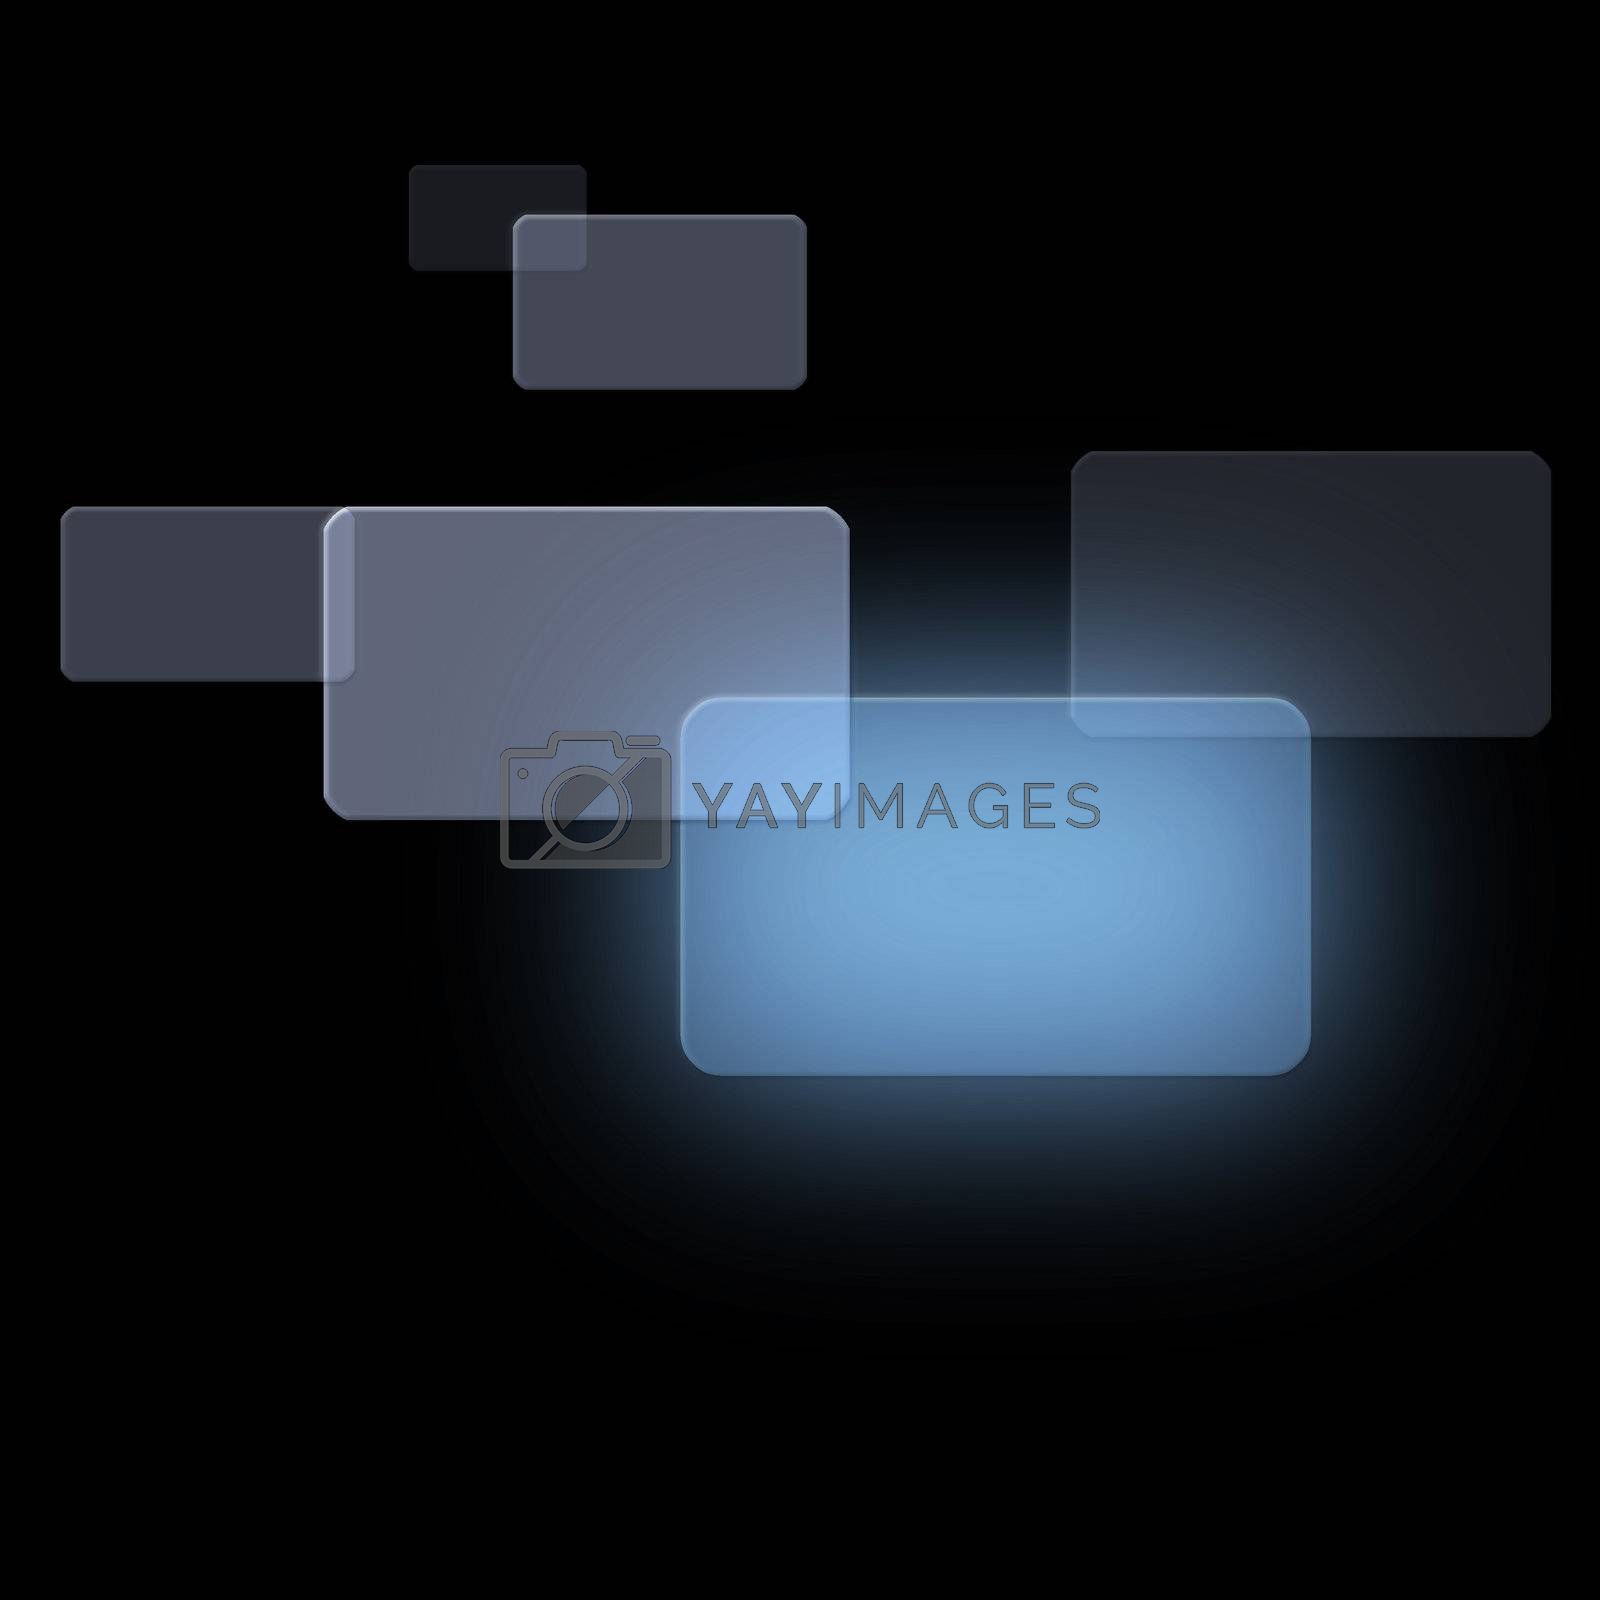 Grey squares overlapping against a black background